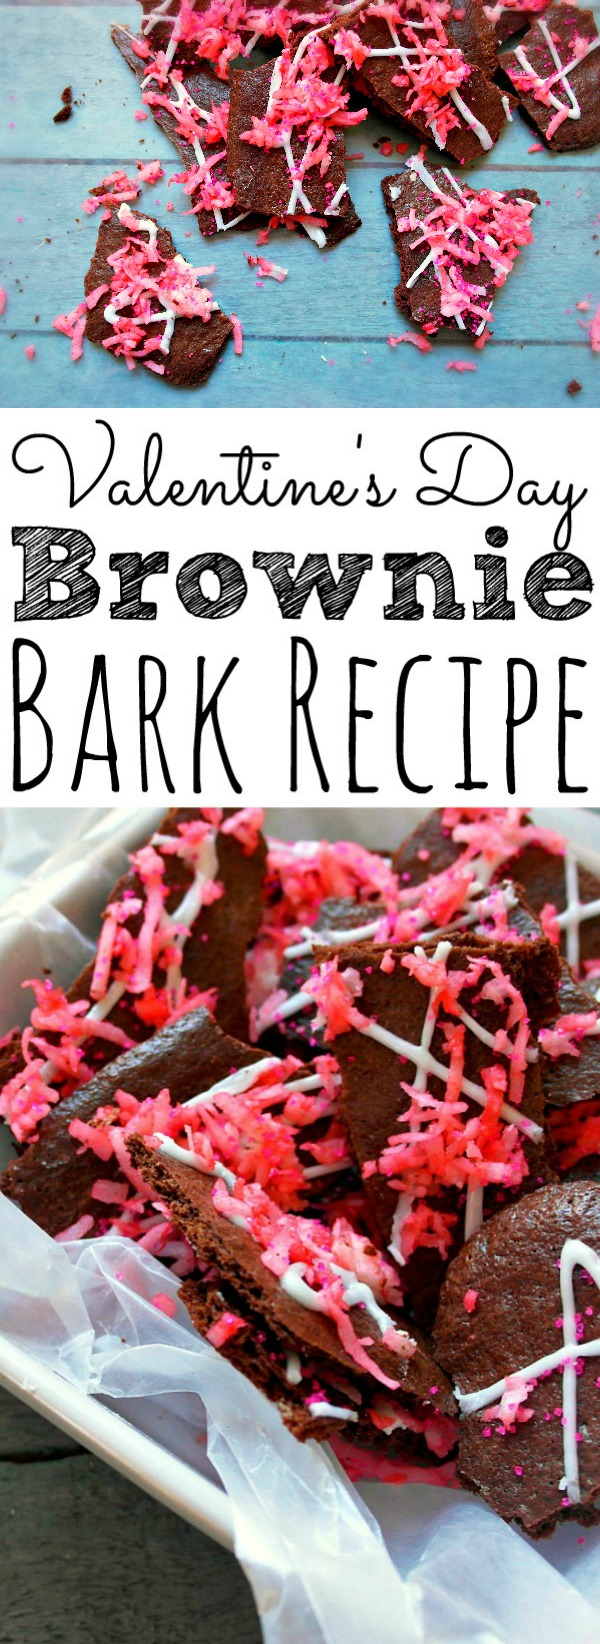 Valentine's Day Brownie Bark Recipe - simplytodaylife.com